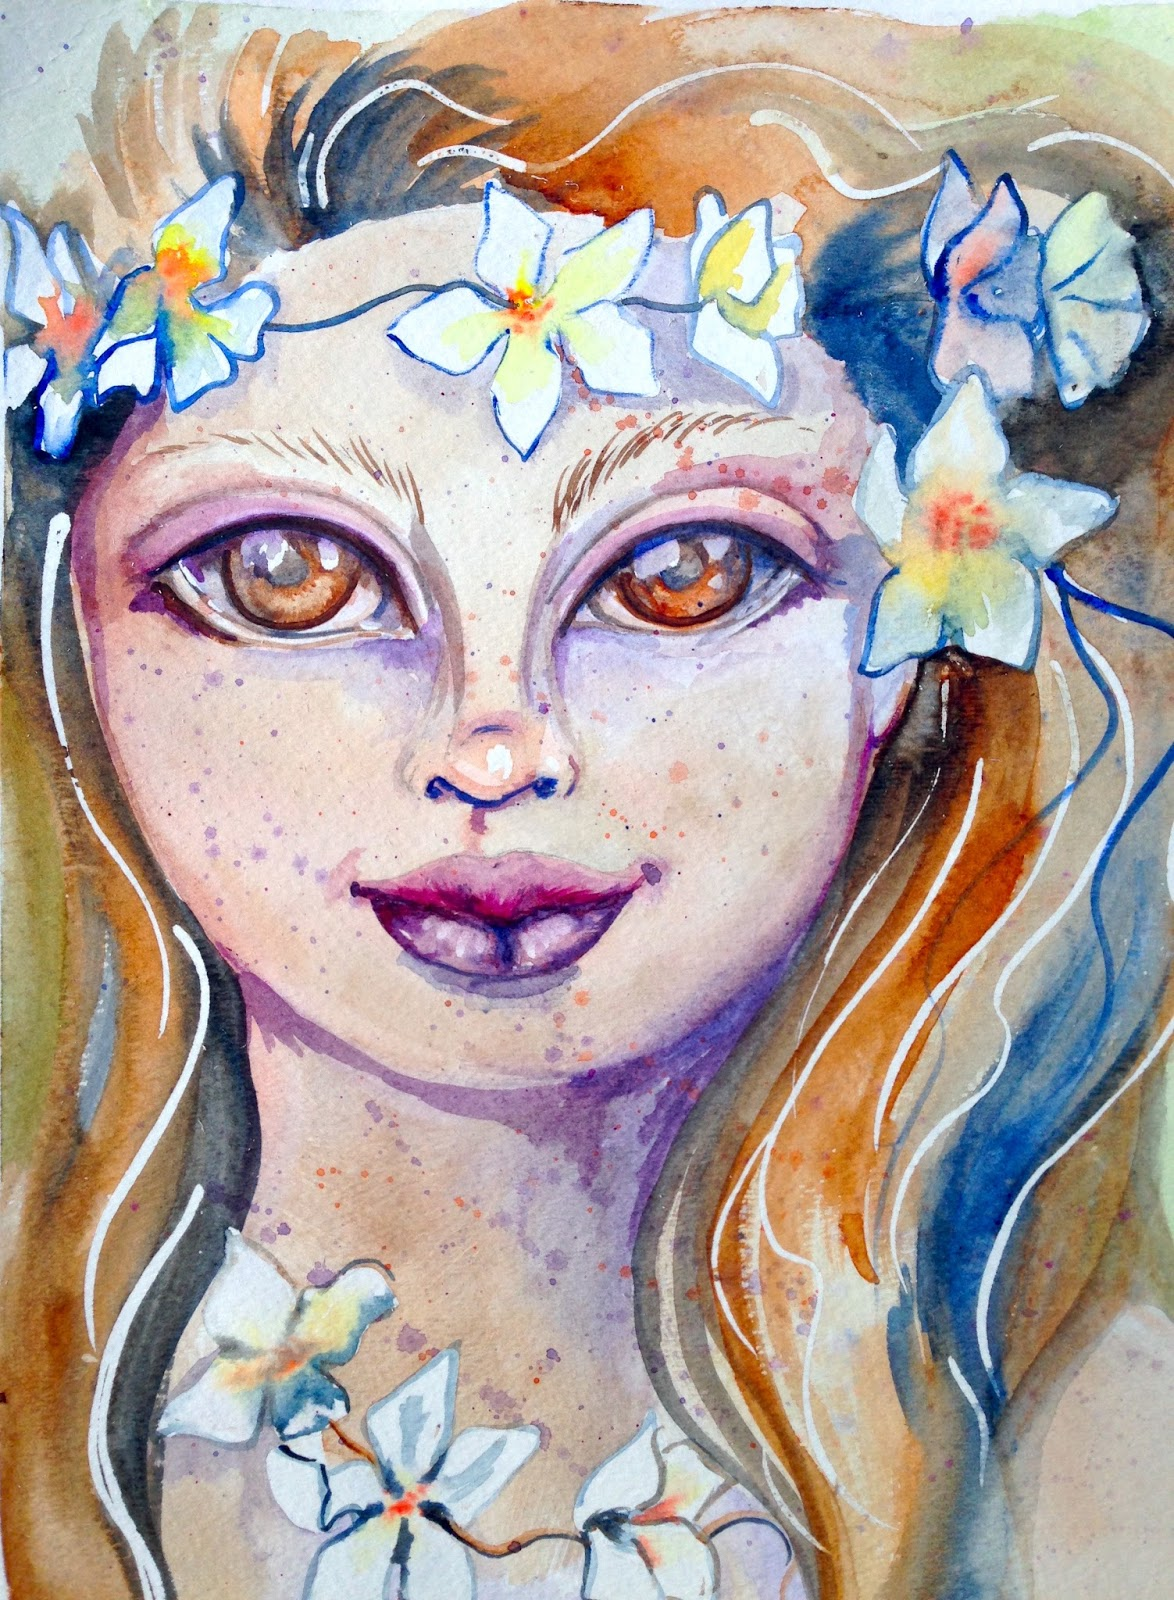 Painting with the Art Sherpa Disney Princess Face Paint